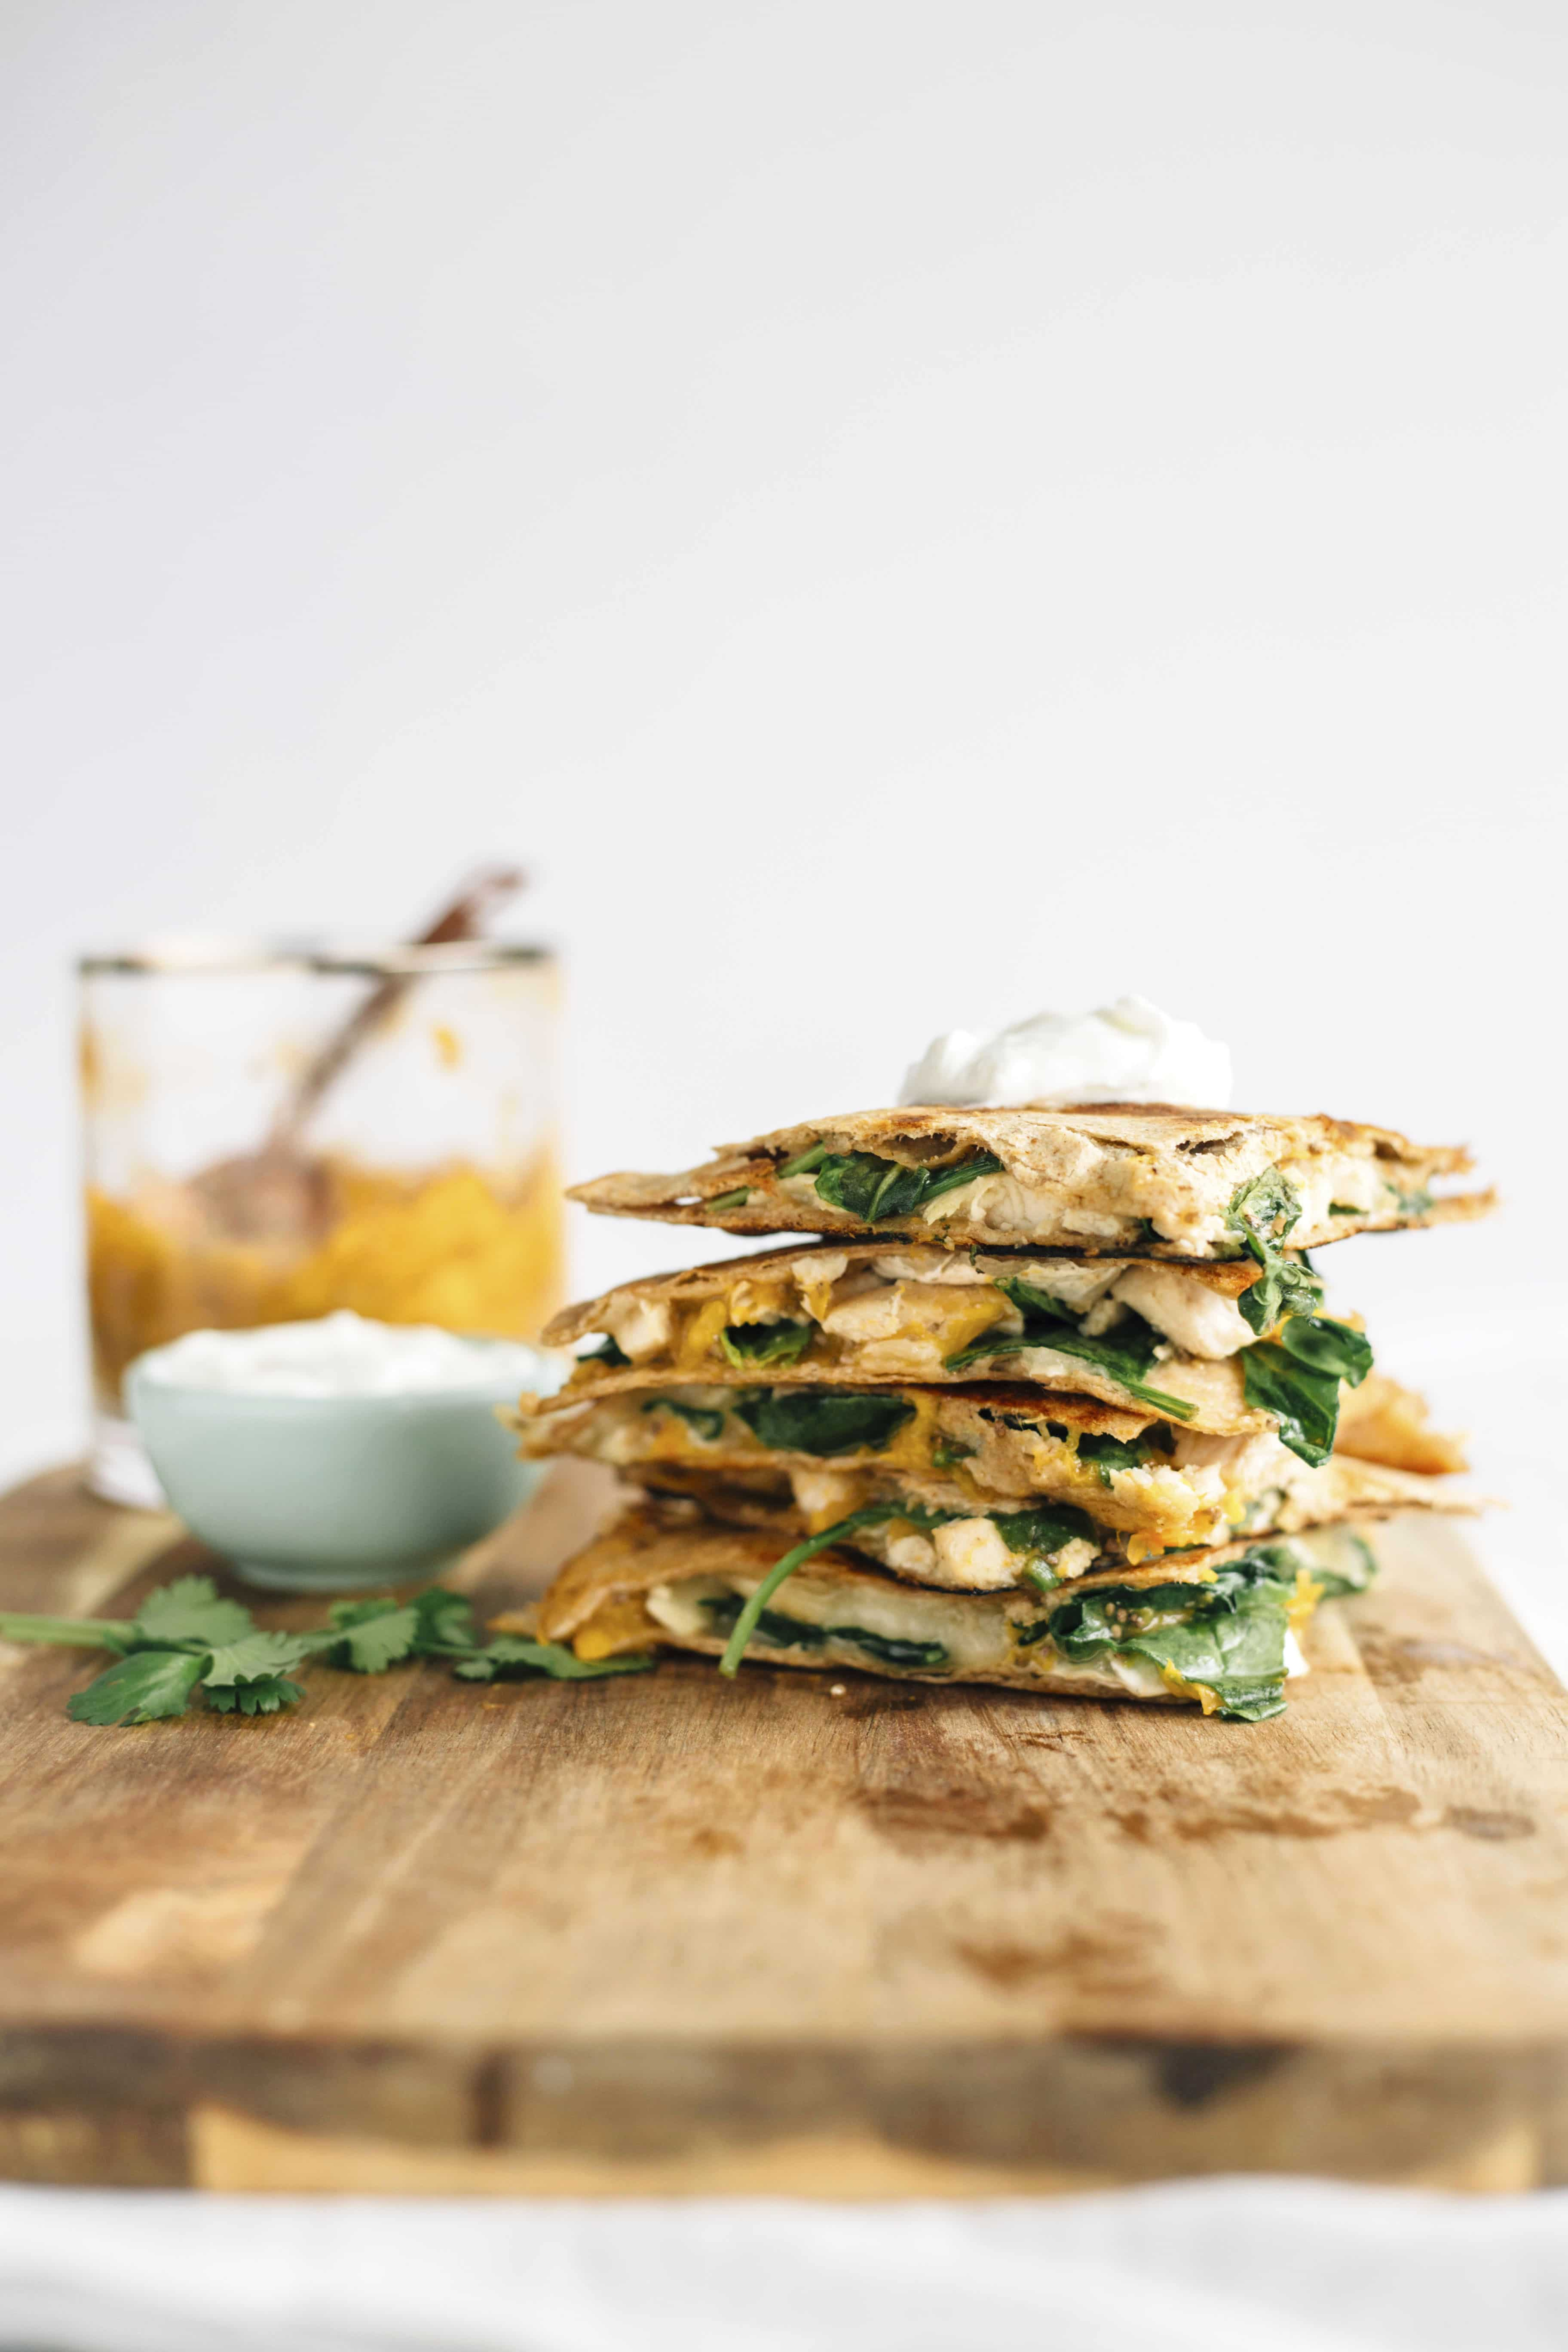 Chicken Quesadilla with Apricot Jam | A tasty quesadilla that's both sweet and salty!